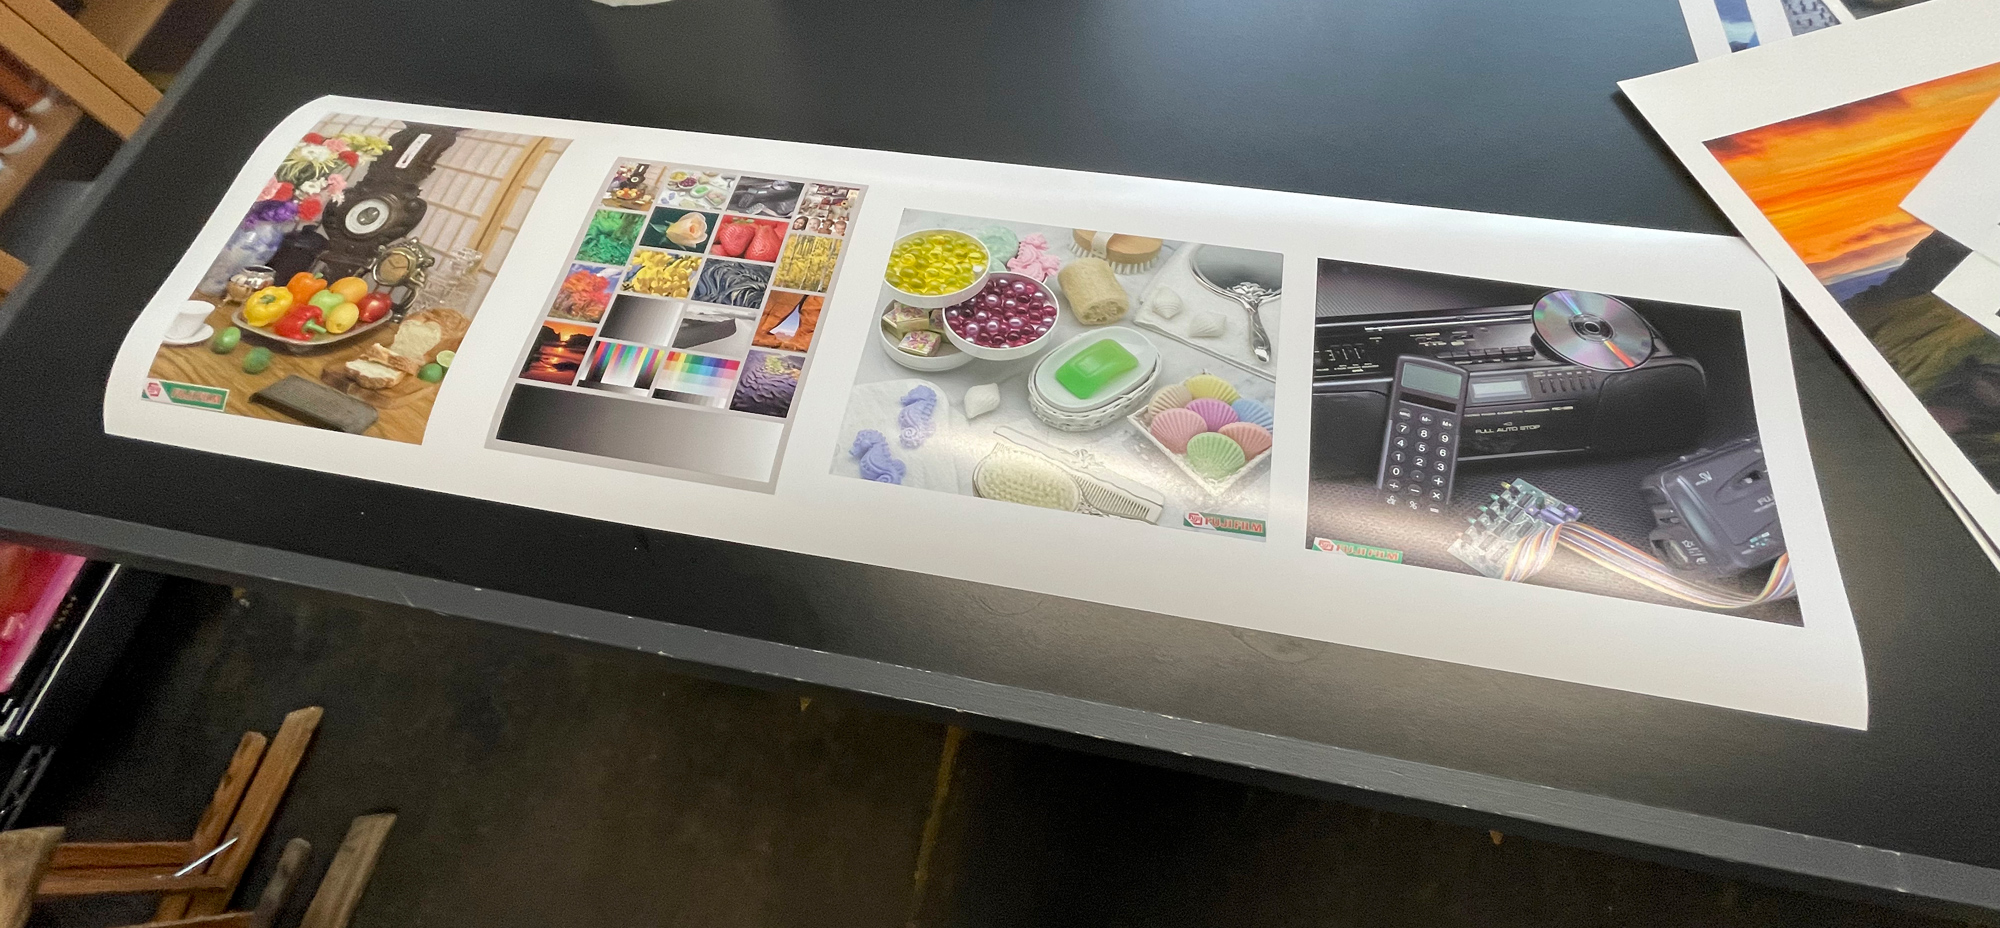 We are always evaluating the images coming off the printers